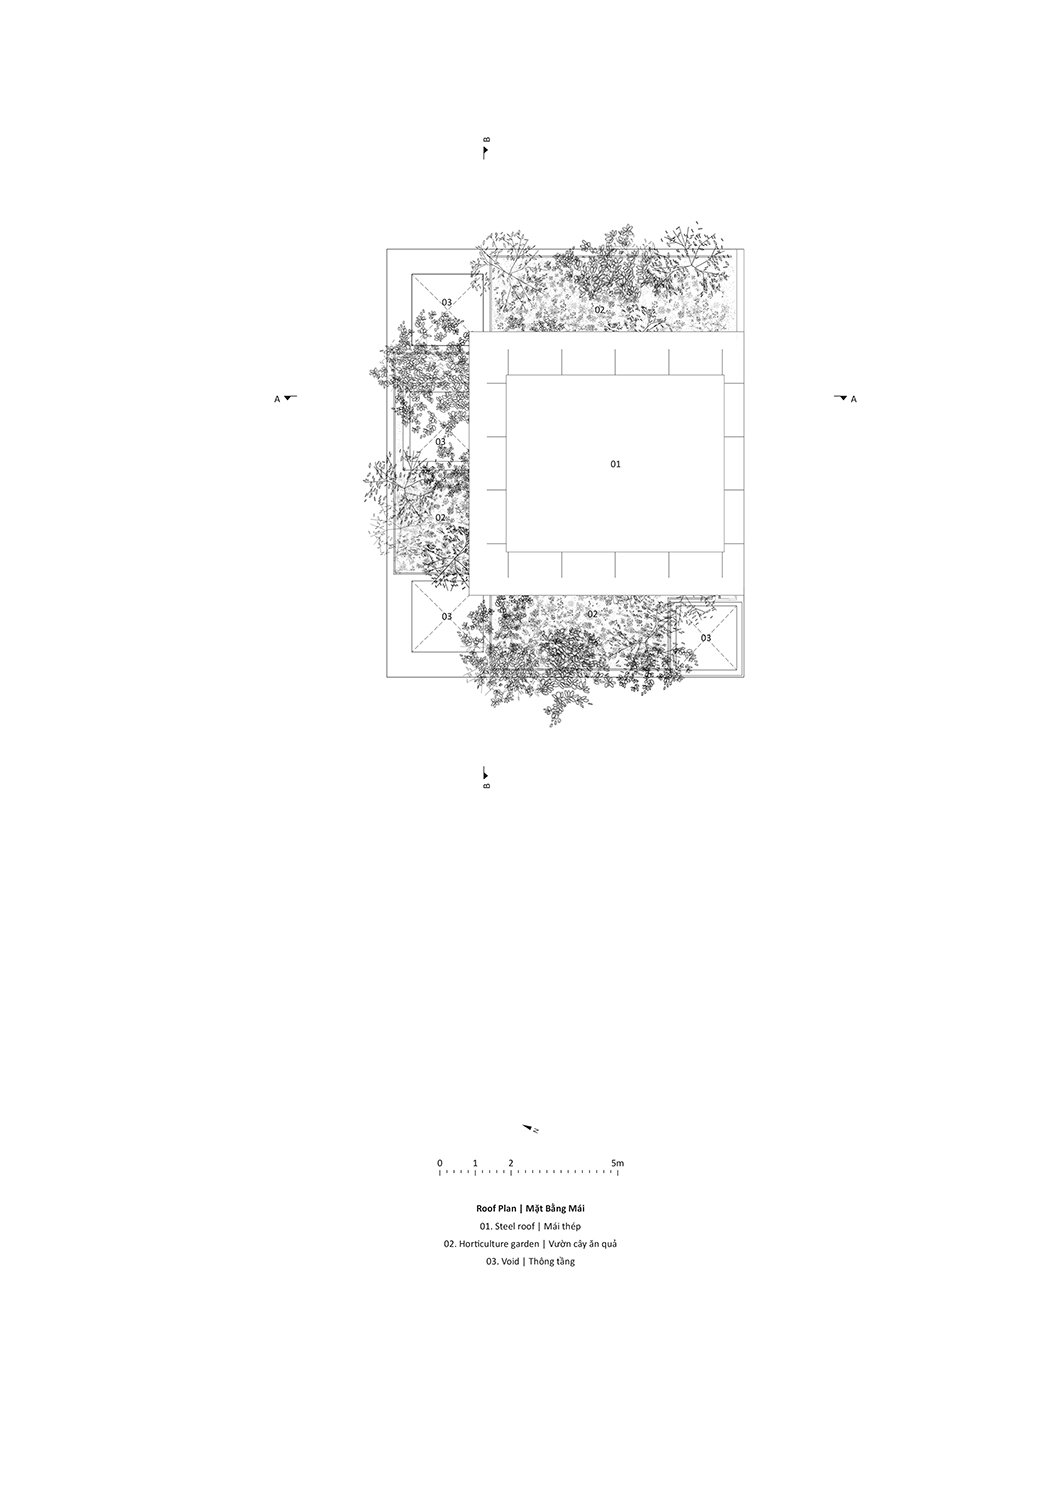 Roof plan Le Thanh Thuong}